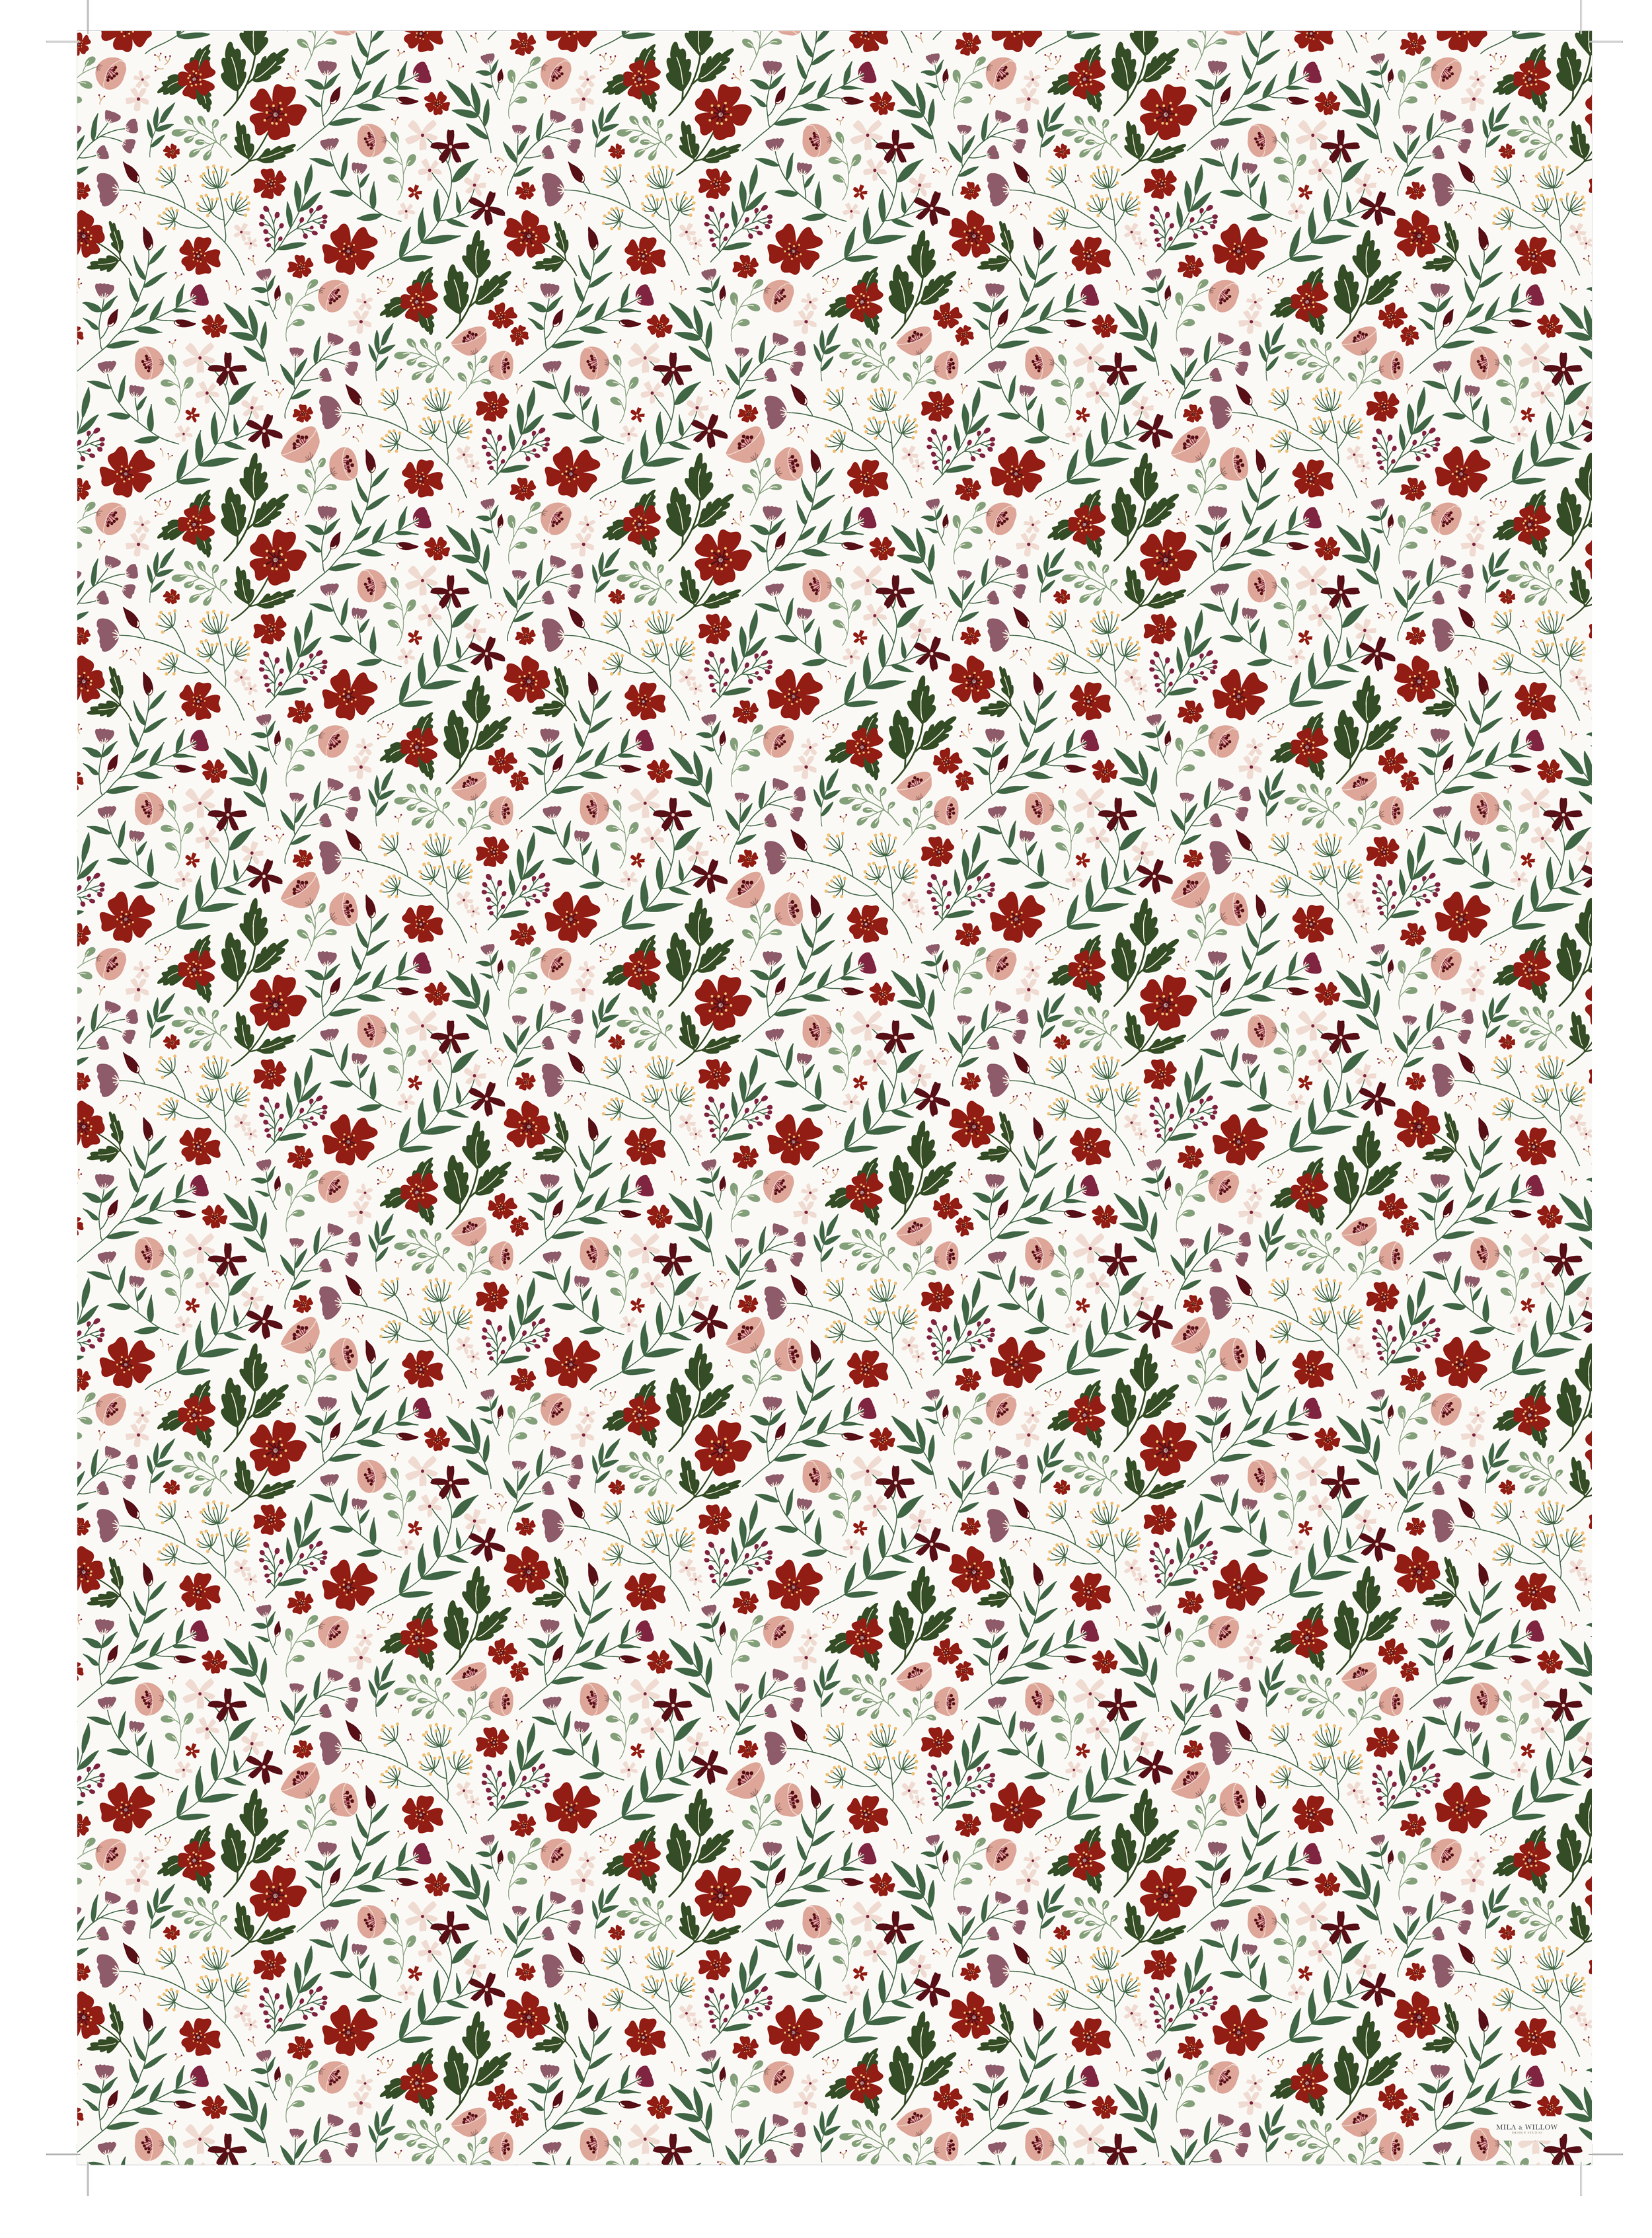 Illustrated wrapping paper with a beautiful red floral pattern on a white background.